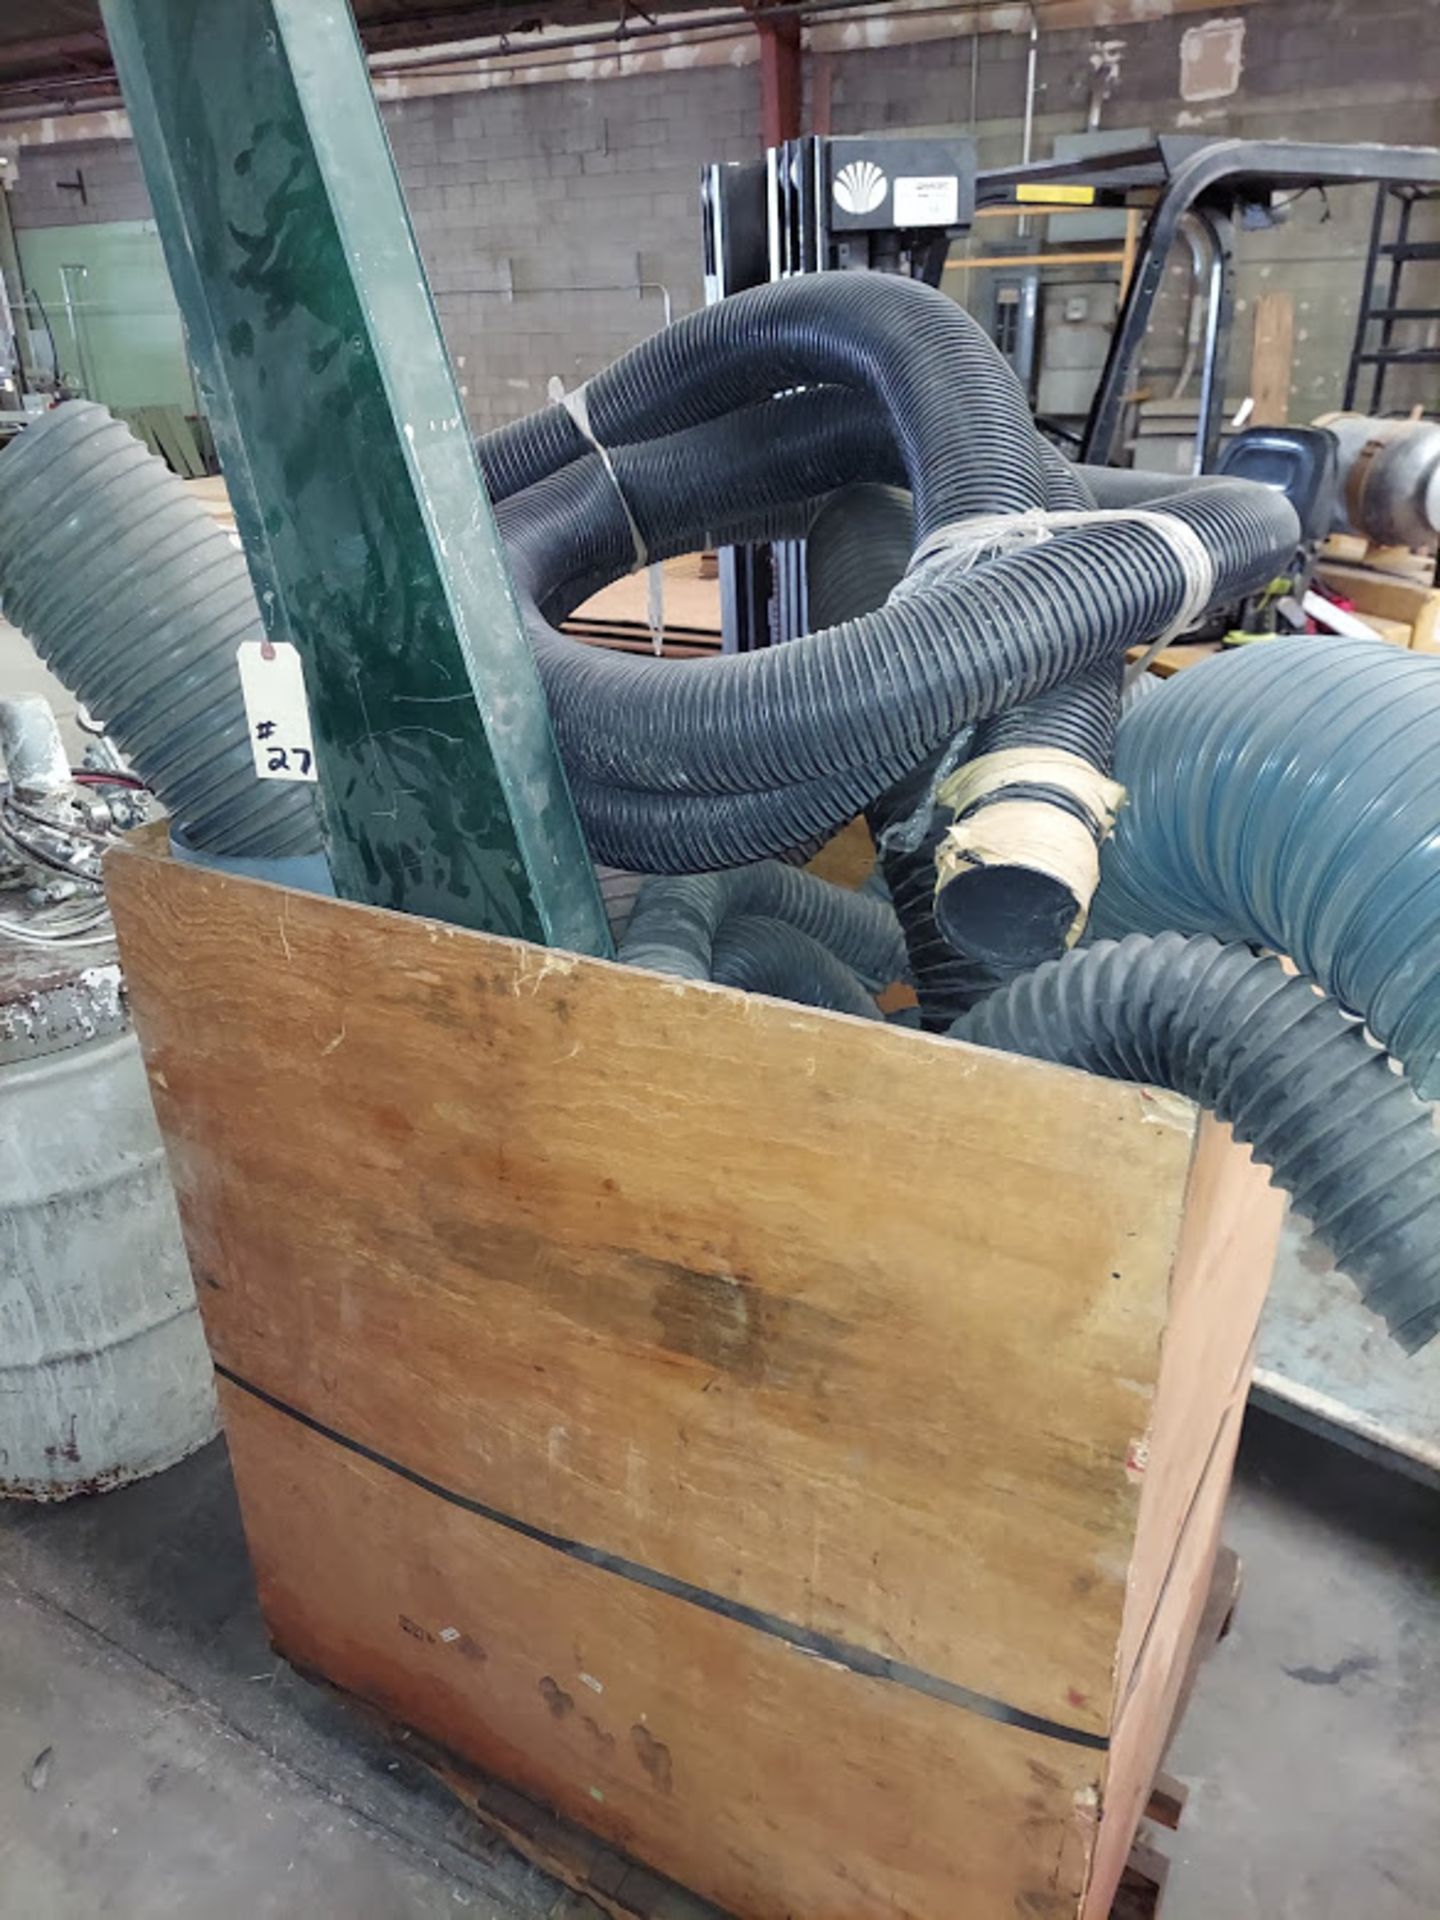 Misc Steel Dust Collecting Fittings & Hoses, Elbows, Blast Gates, Y's, & Reducers